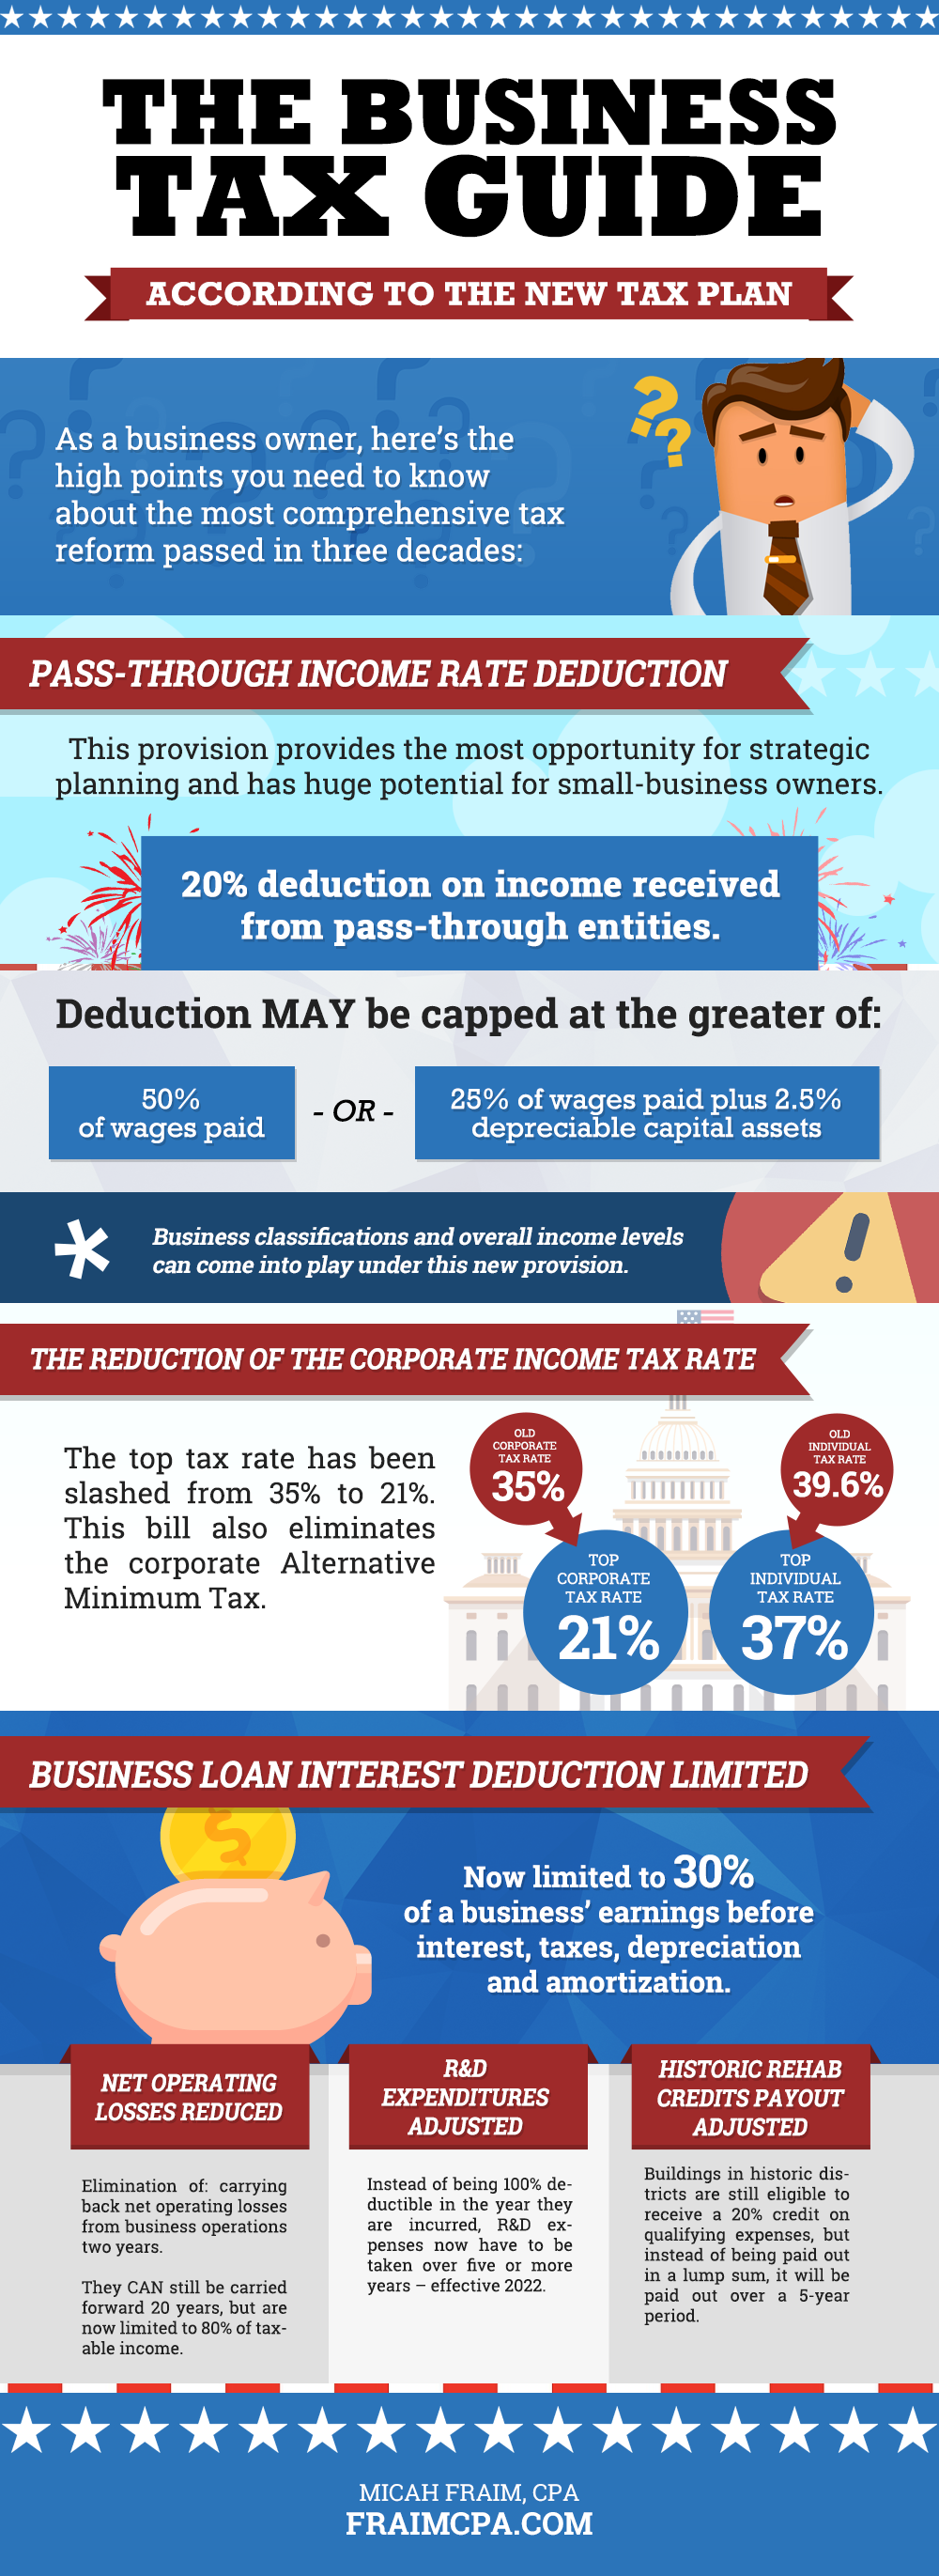 business tax guide for 2019 Infographic